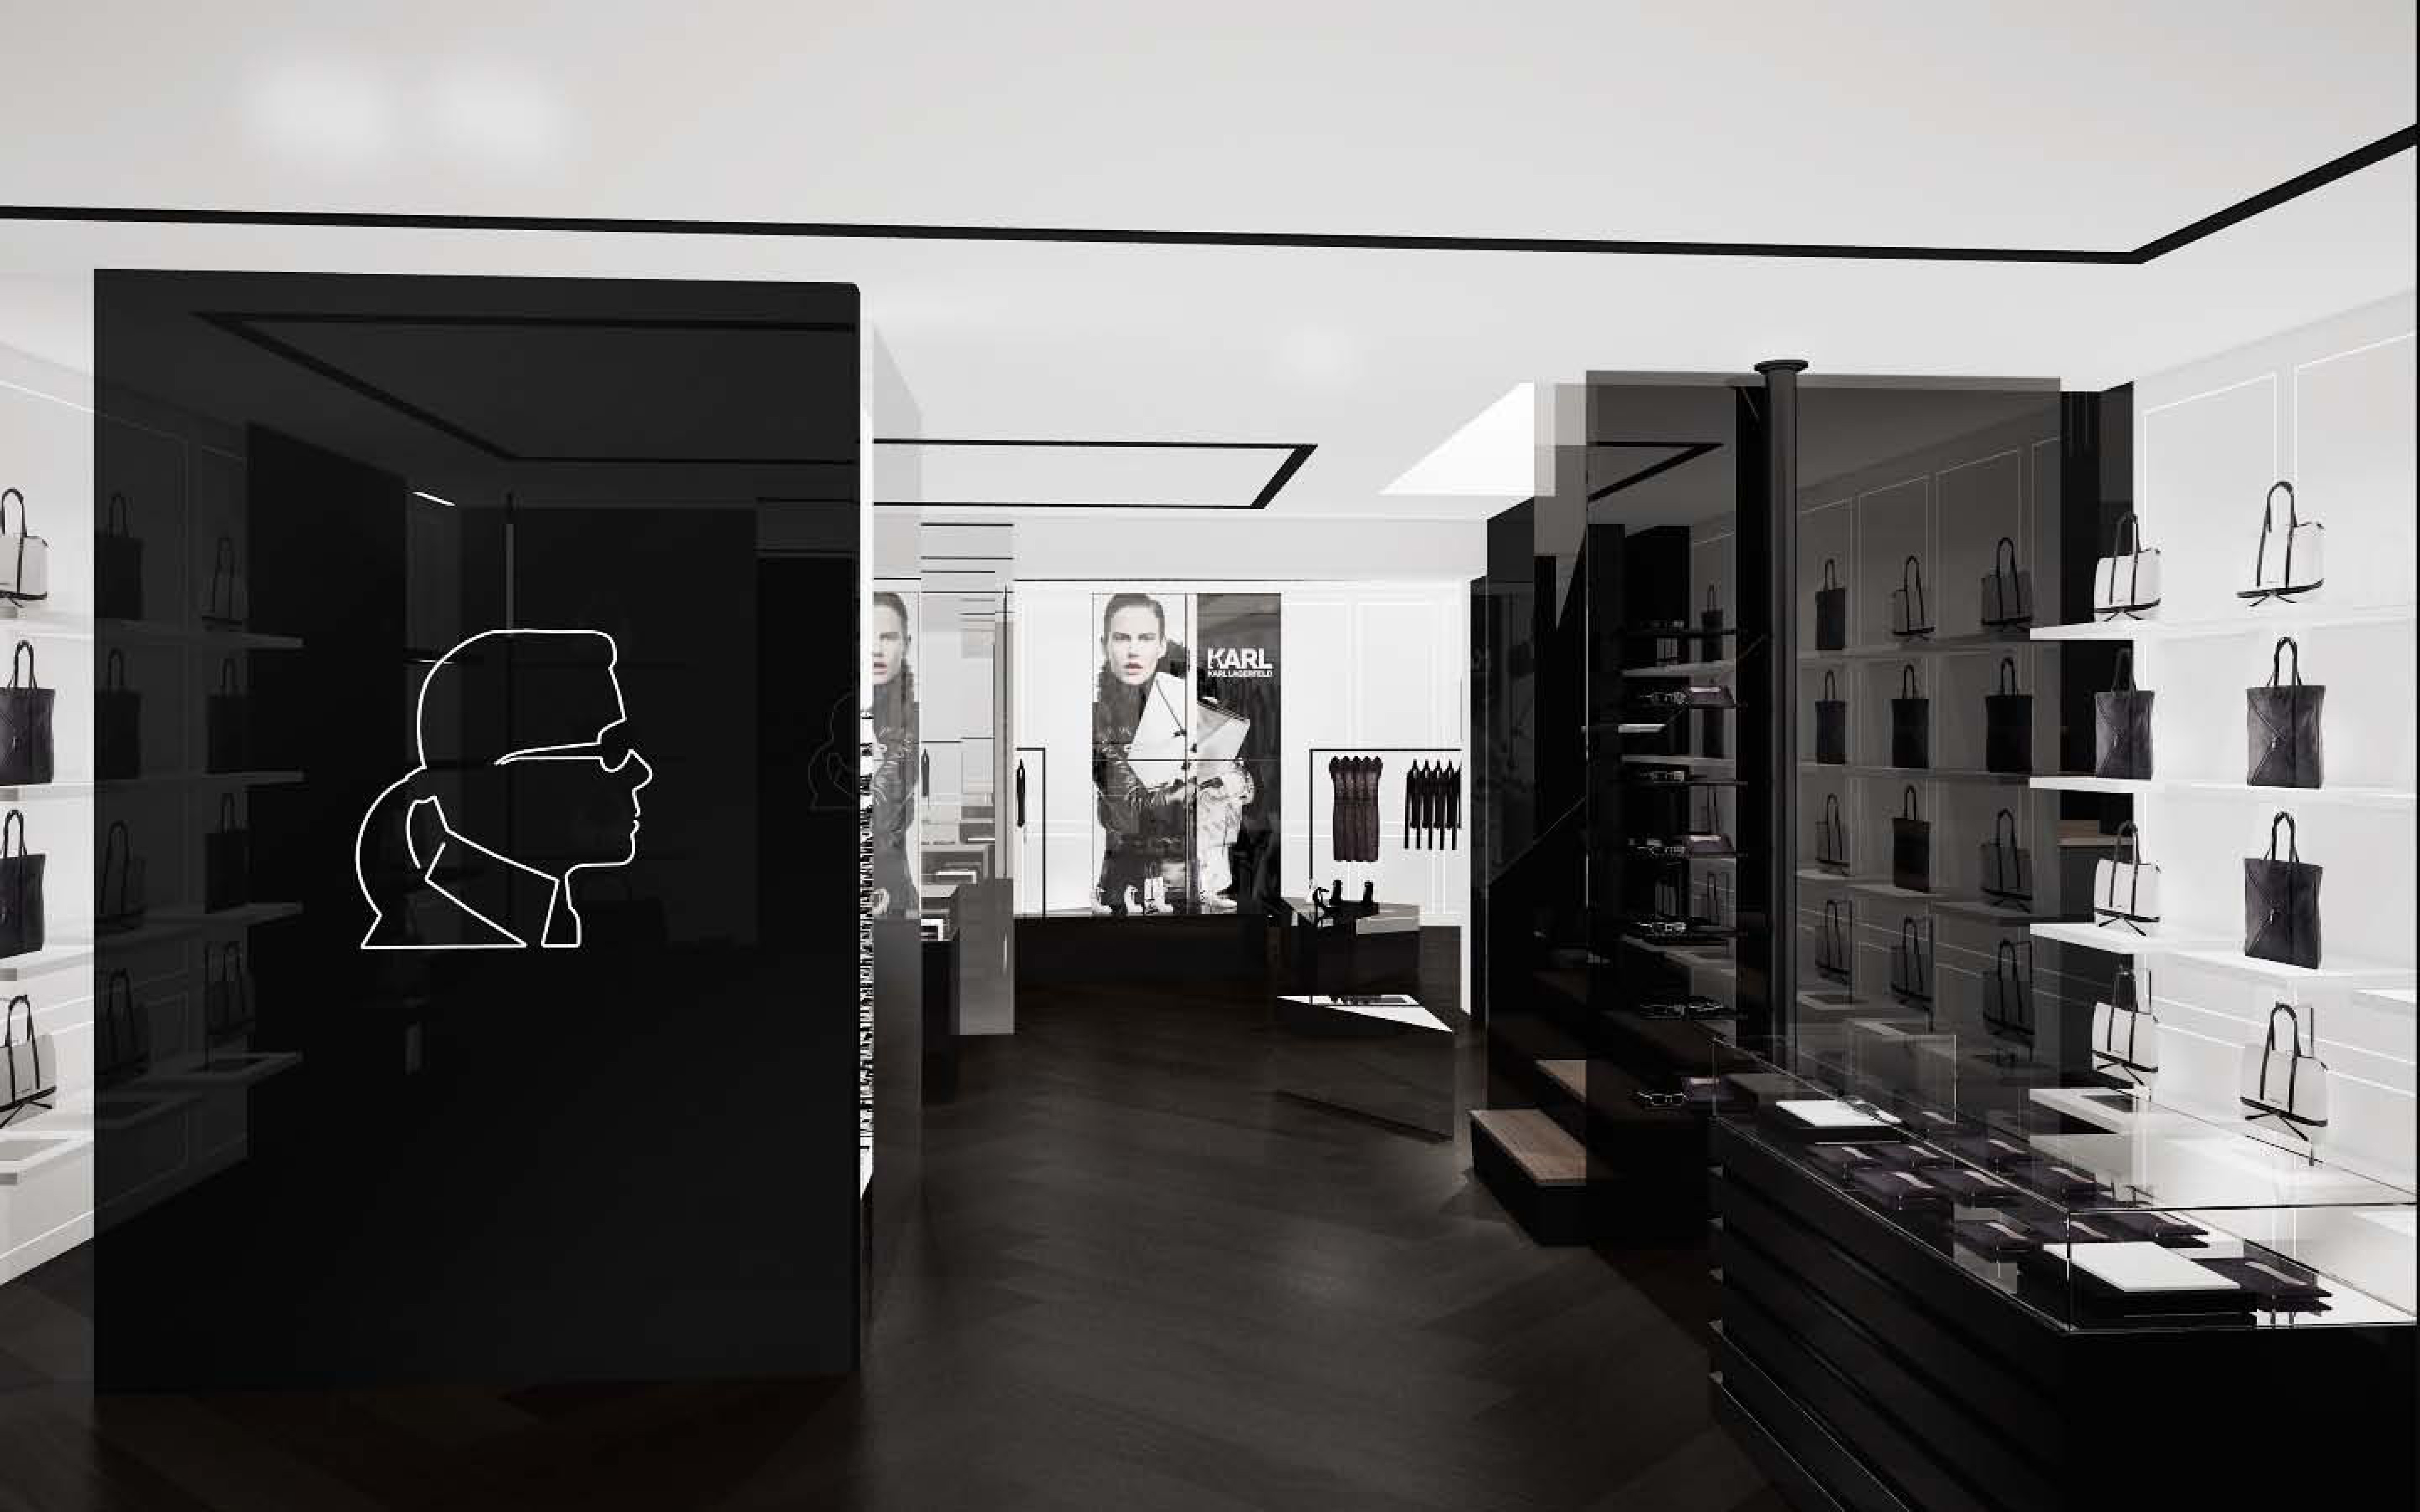 karl lagerfeld paris ss13 pesentation concept store opening february 2013. Black Bedroom Furniture Sets. Home Design Ideas